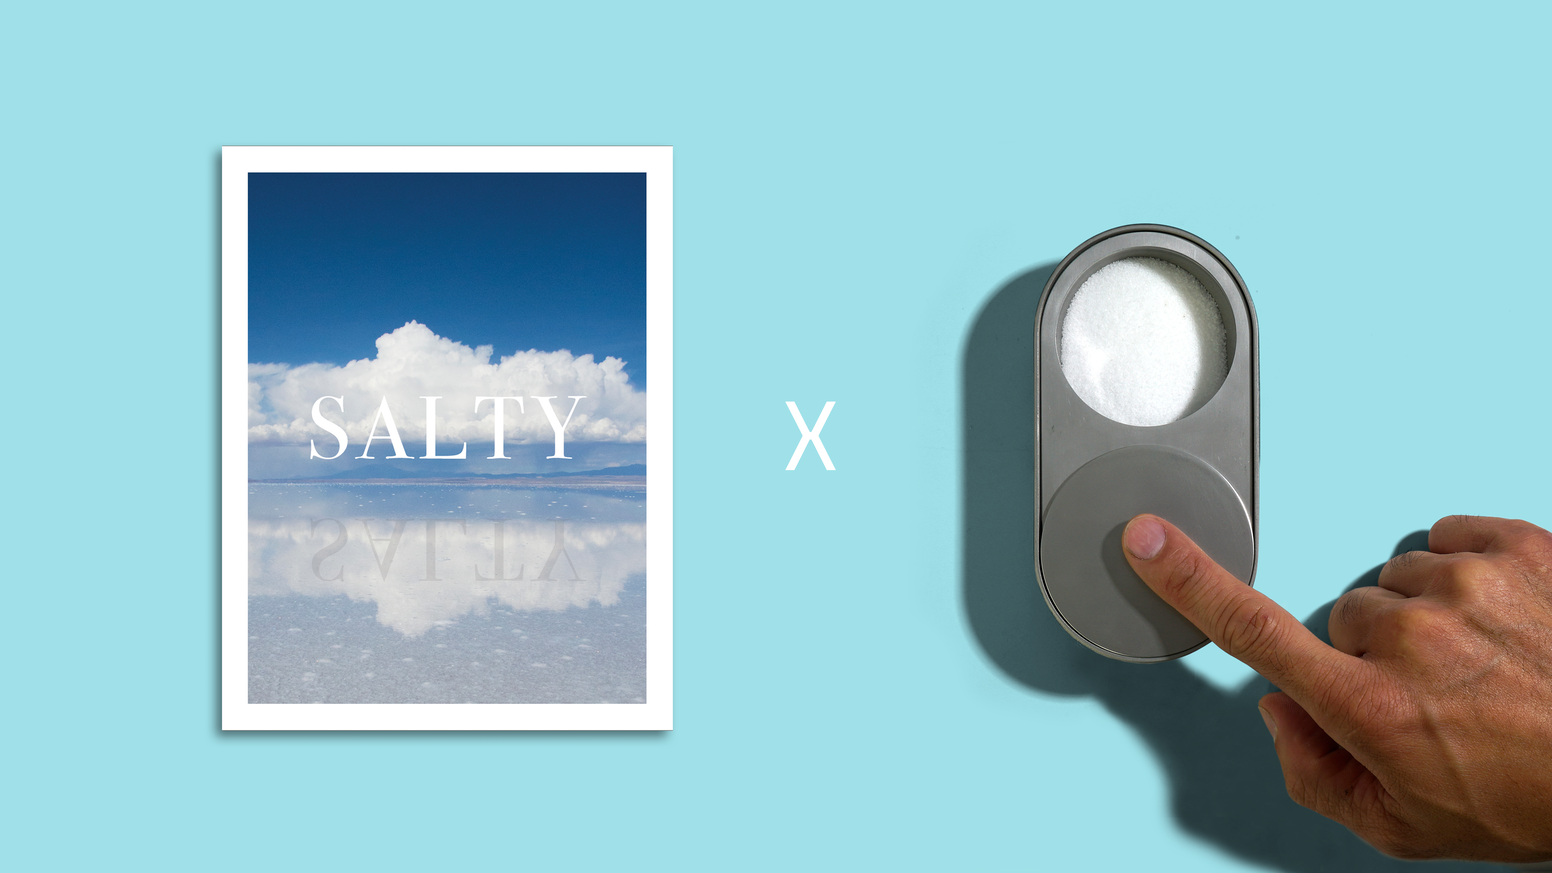 Salty-A salt vessel + a magazine about salt.